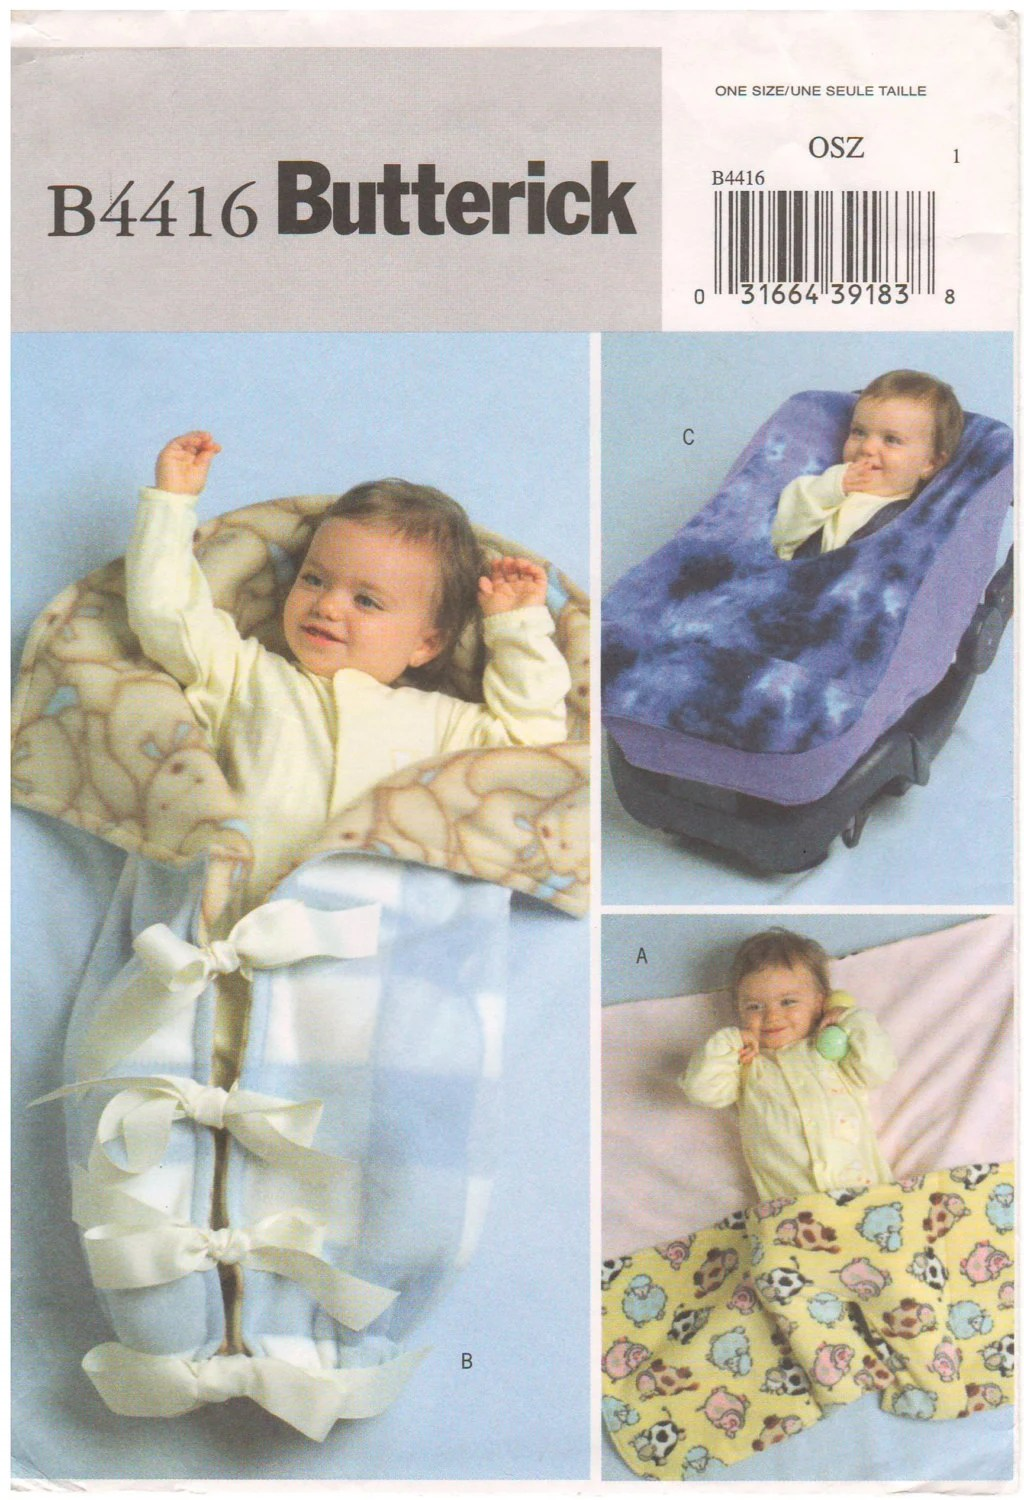 Infant Car Seat Good For How Long 2004 Butterick 4416 Sewing Pattern Infant Baby Fleece Wrap